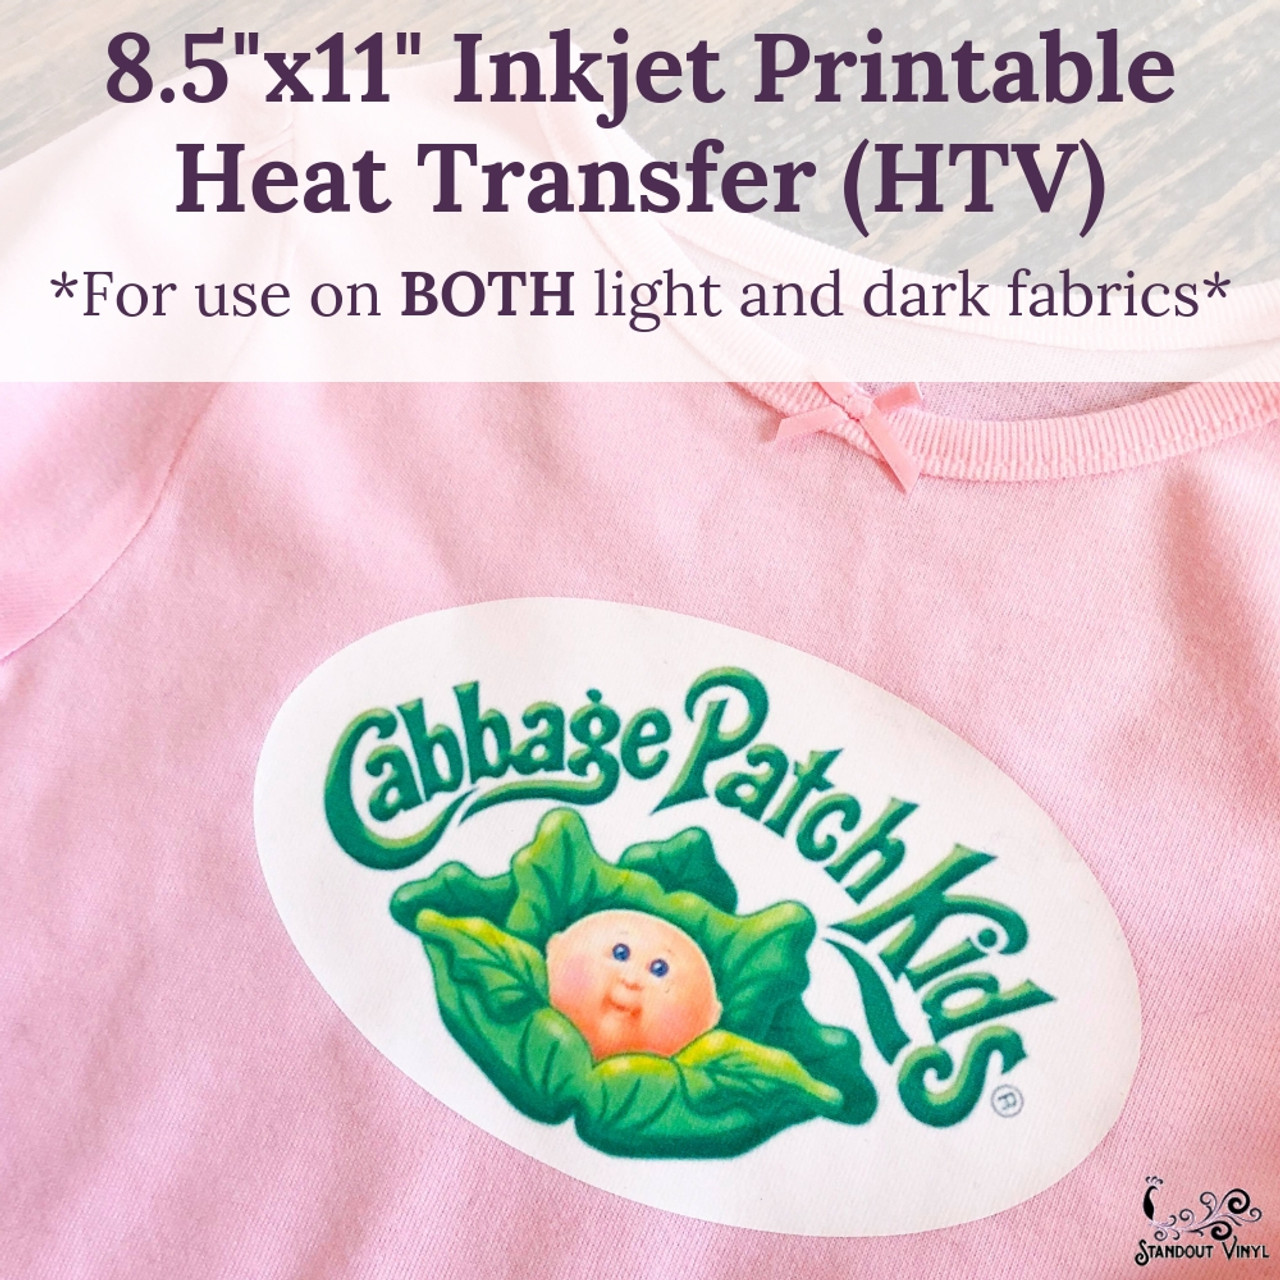 image about Heat Transfer Printable Vinyl identified as 8.5\